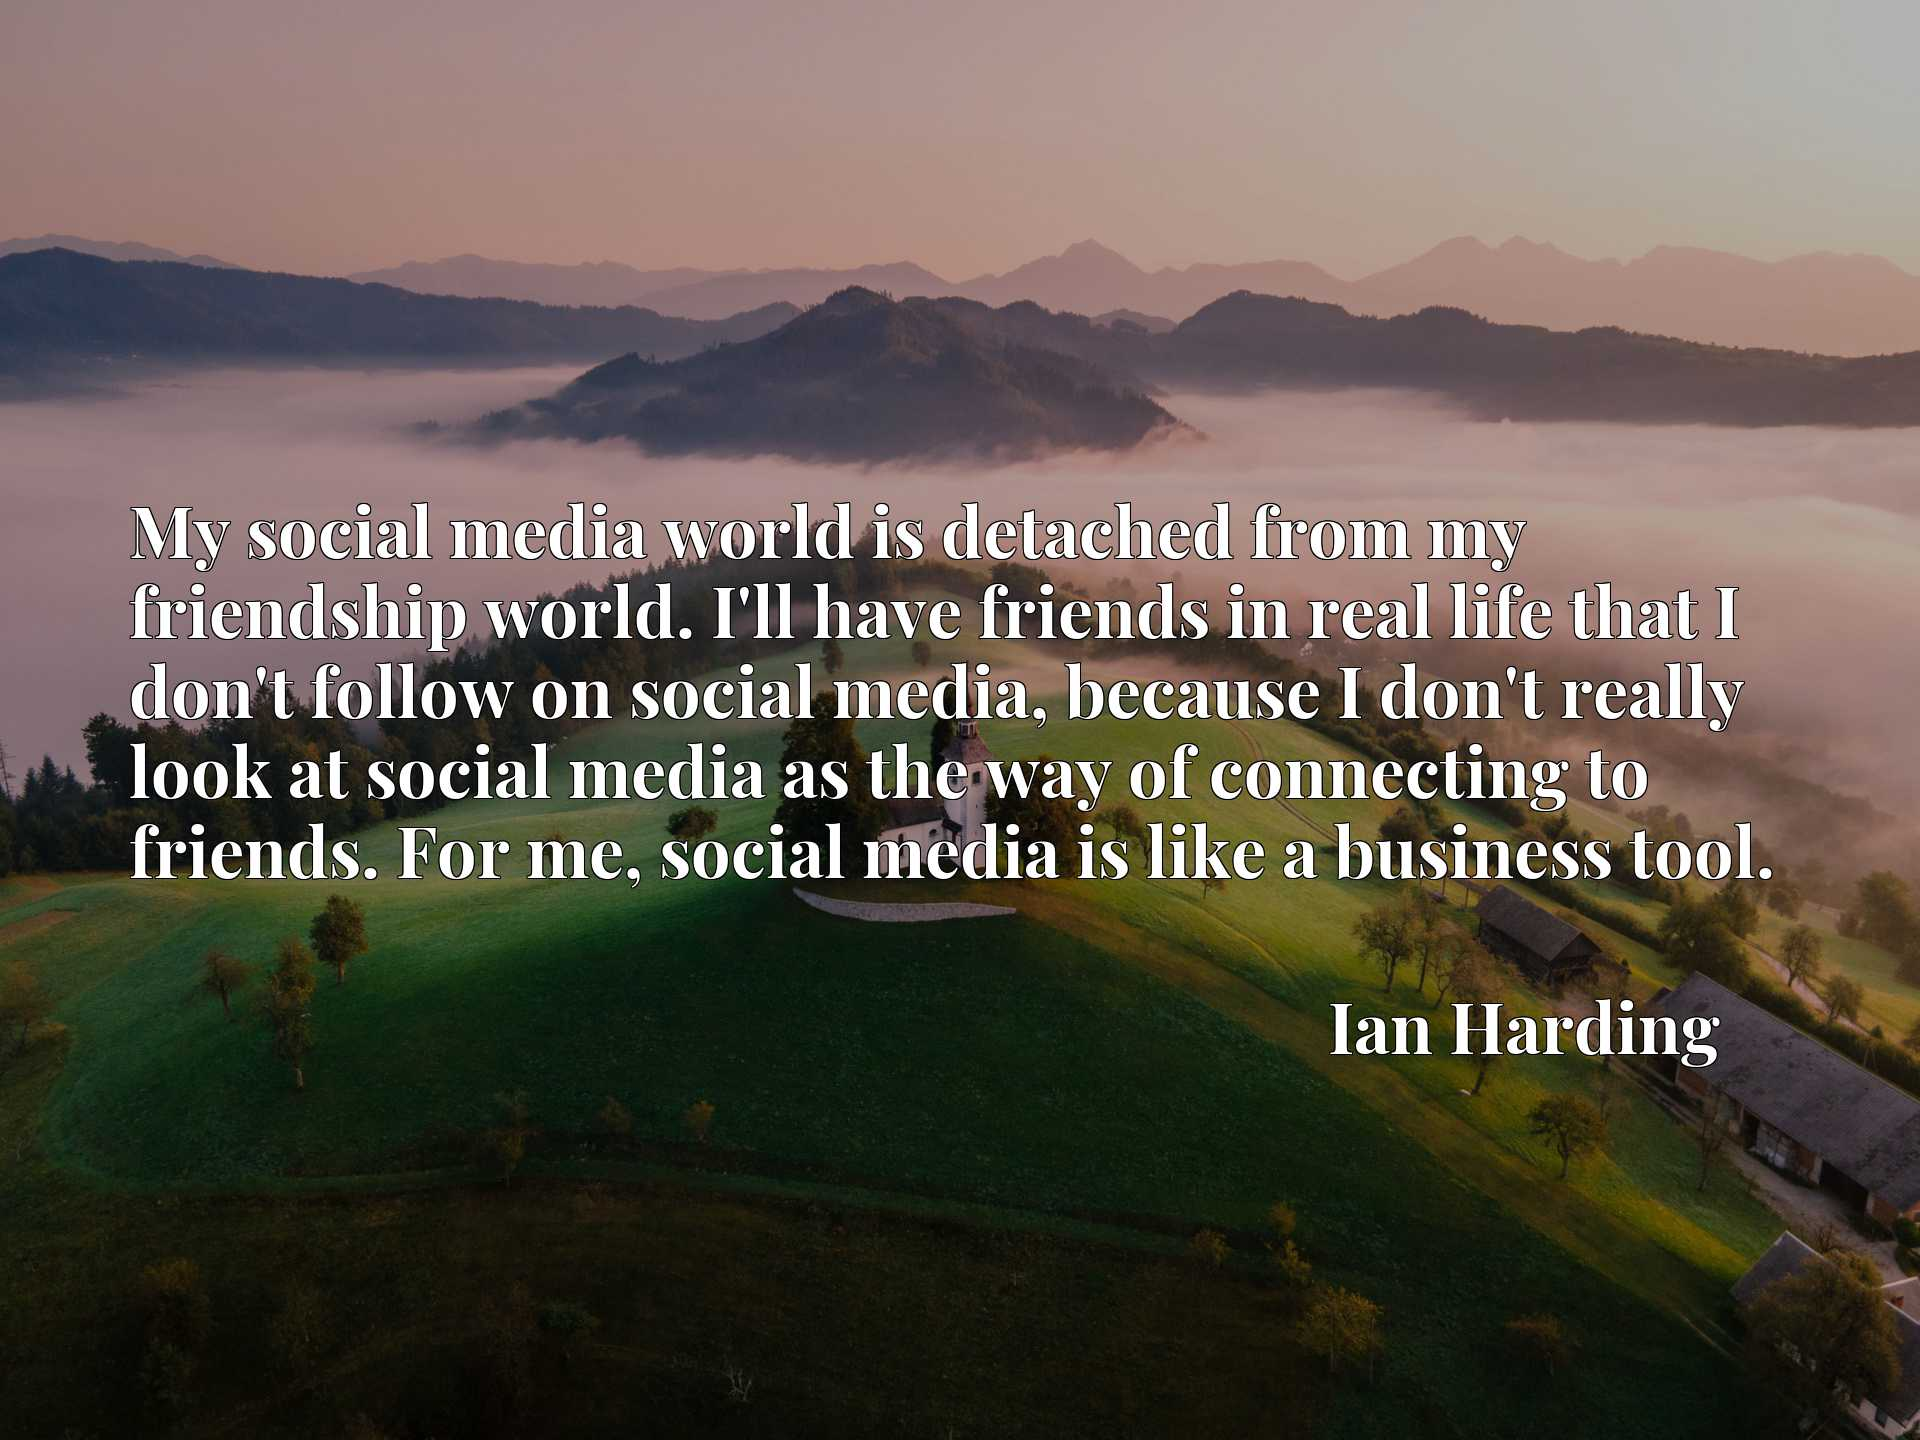 Quote Picture :My social media world is detached from my friendship world. I'll have friends in real life that I don't follow on social media, because I don't really look at social media as the way of connecting to friends. For me, social media is like a business tool.